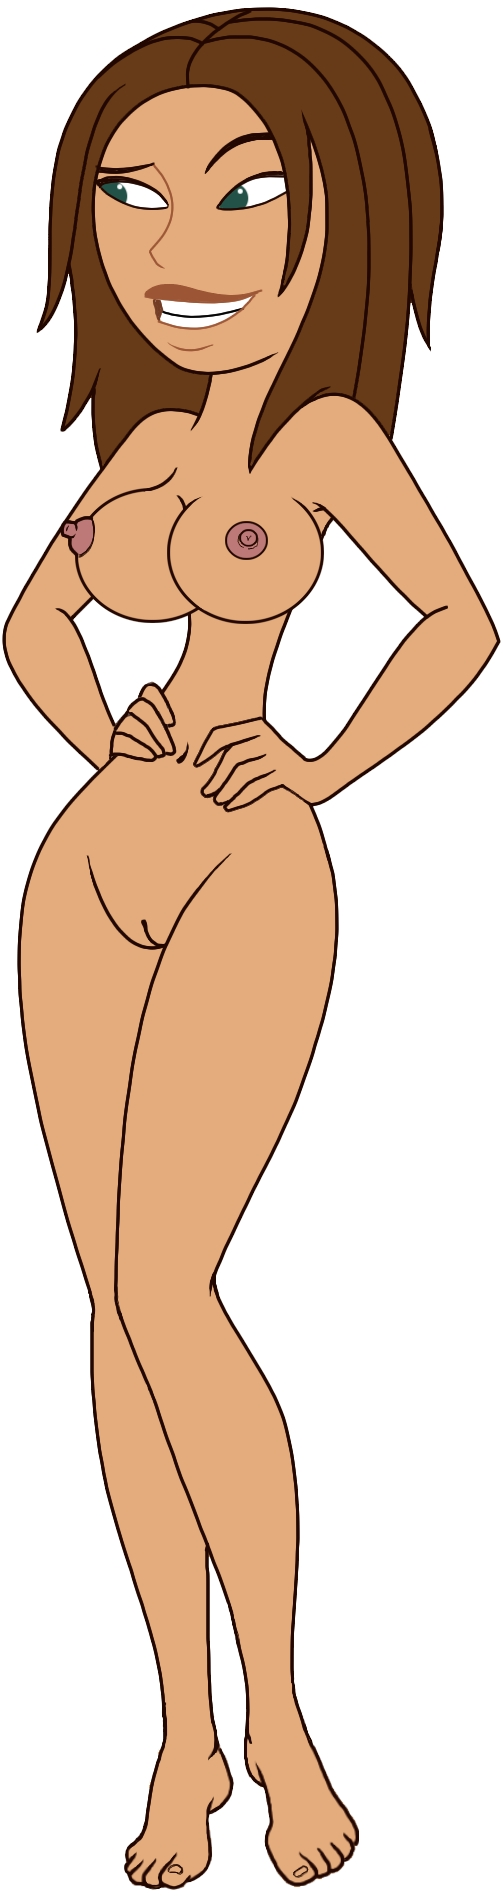 Kim possible solo nude can not